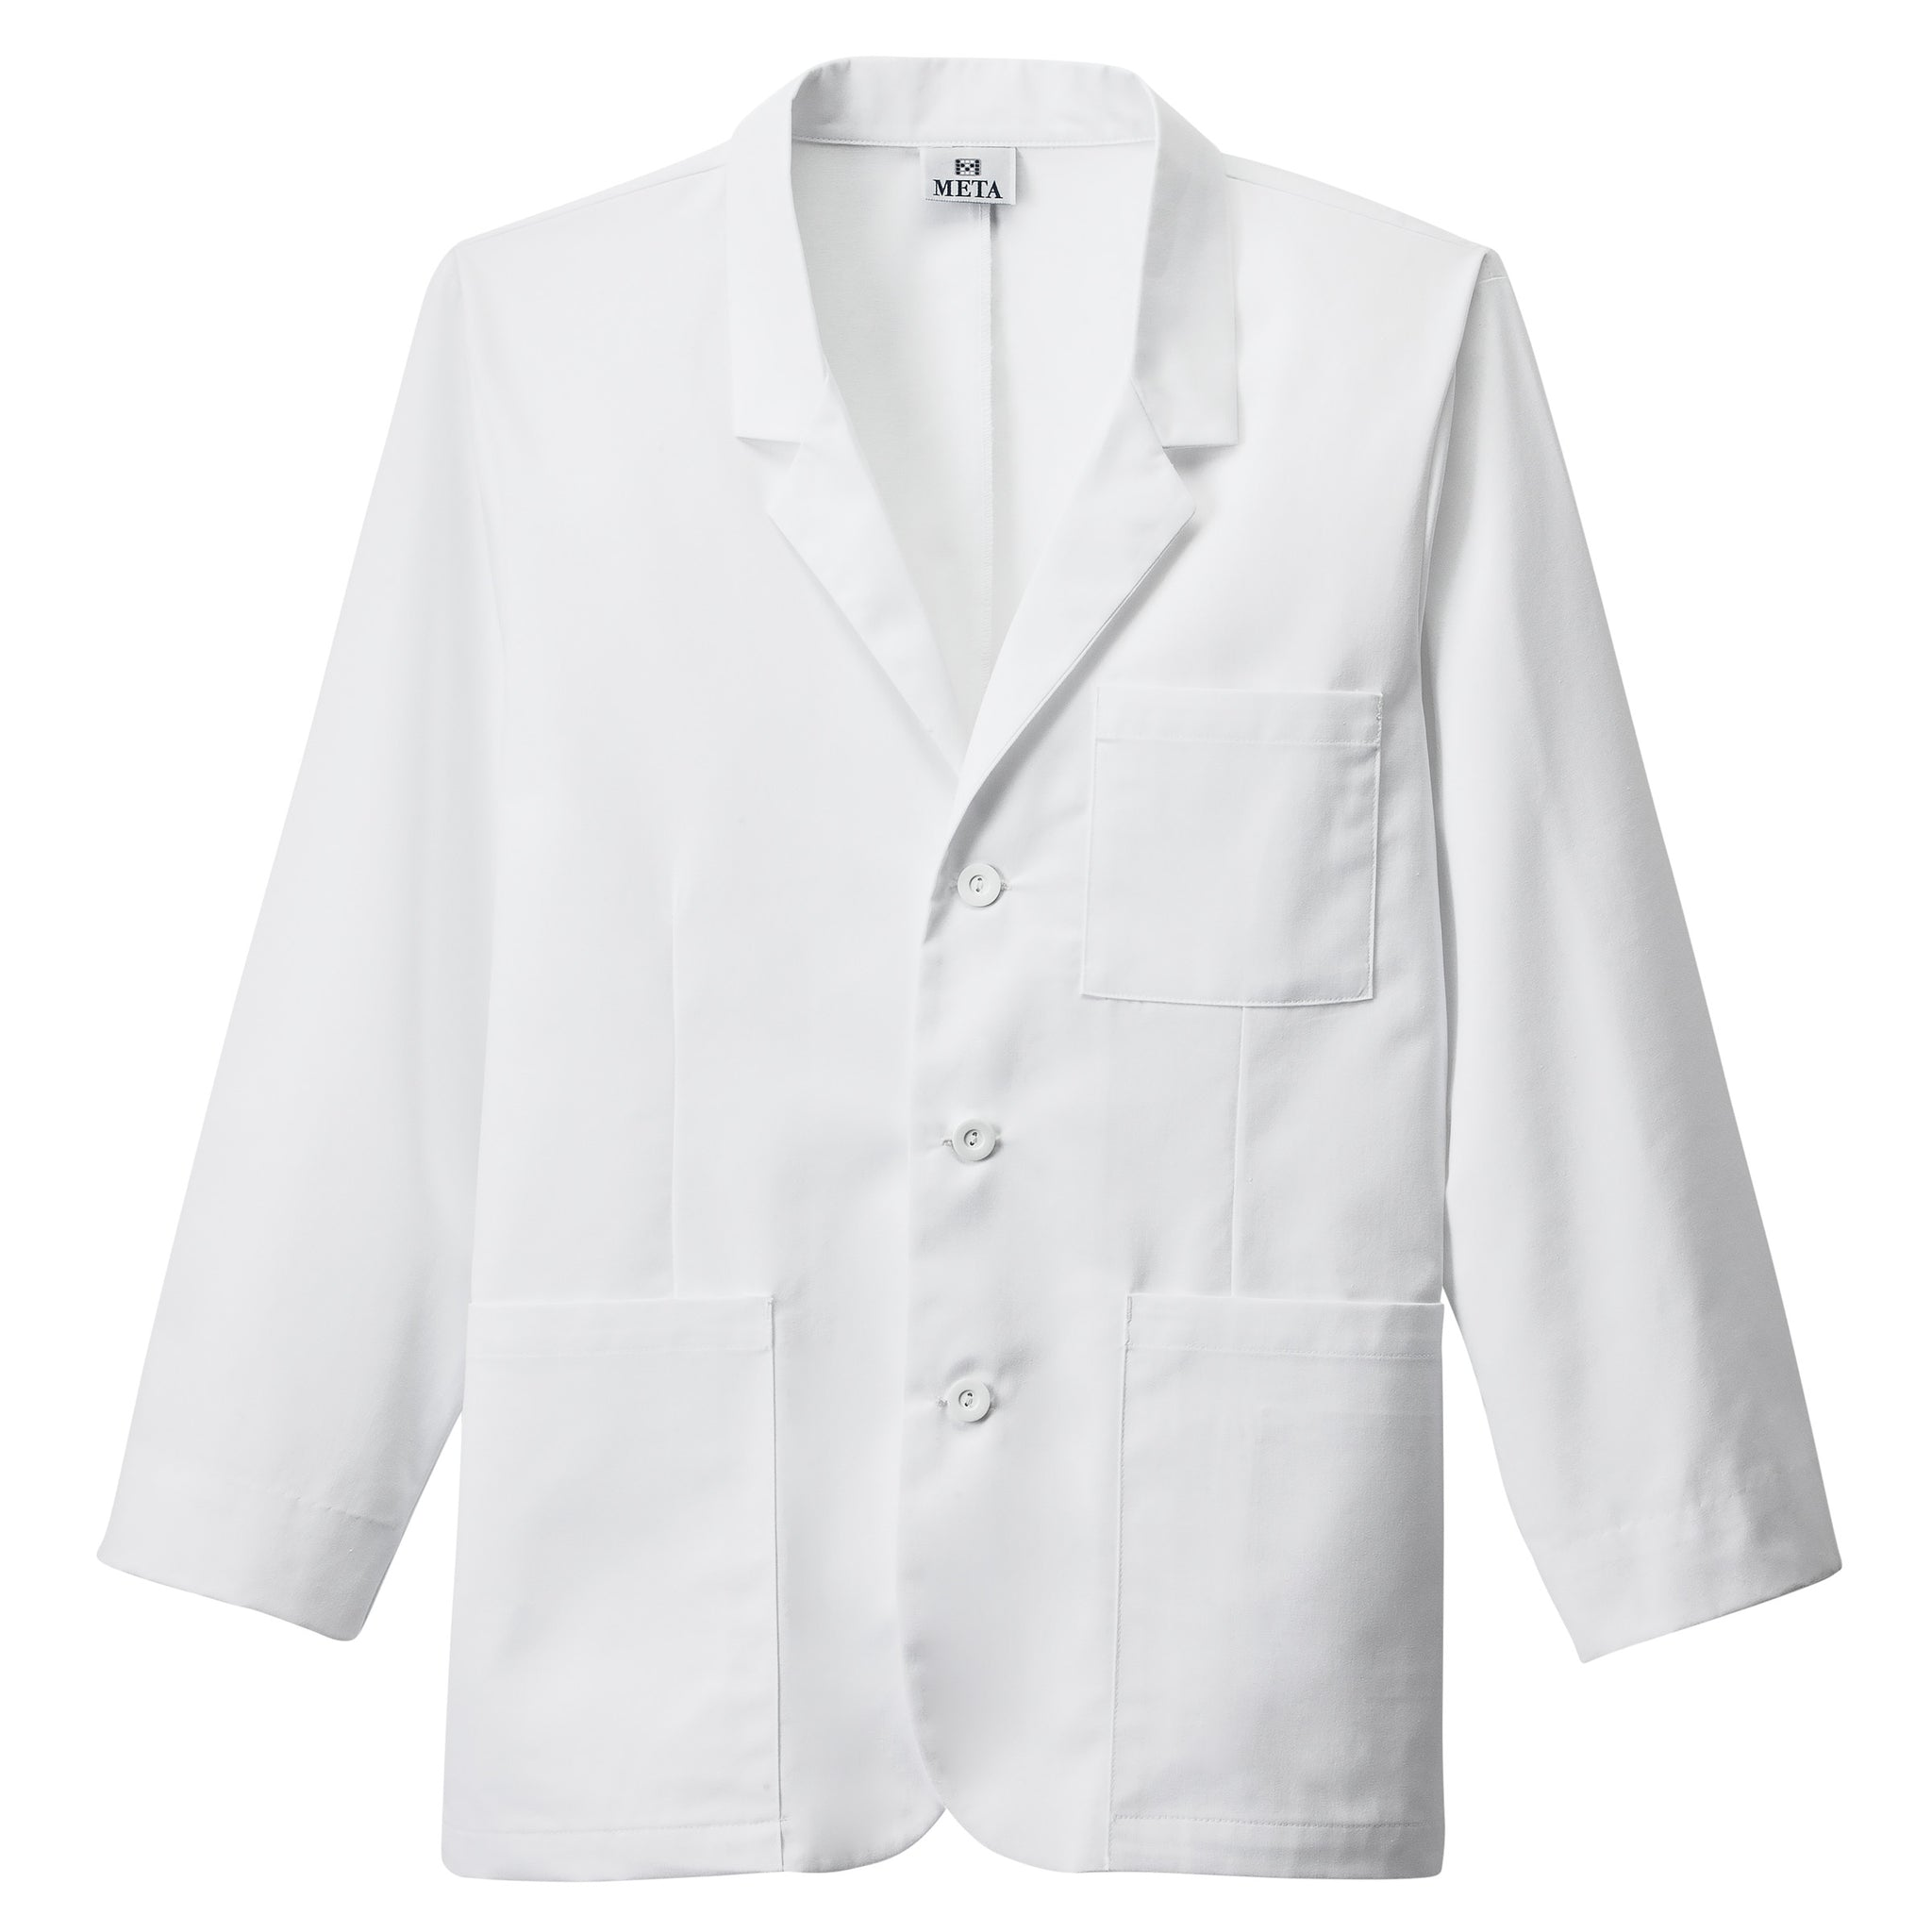 "Meta Men's iPad 30"" Pharmacy Coat 739"